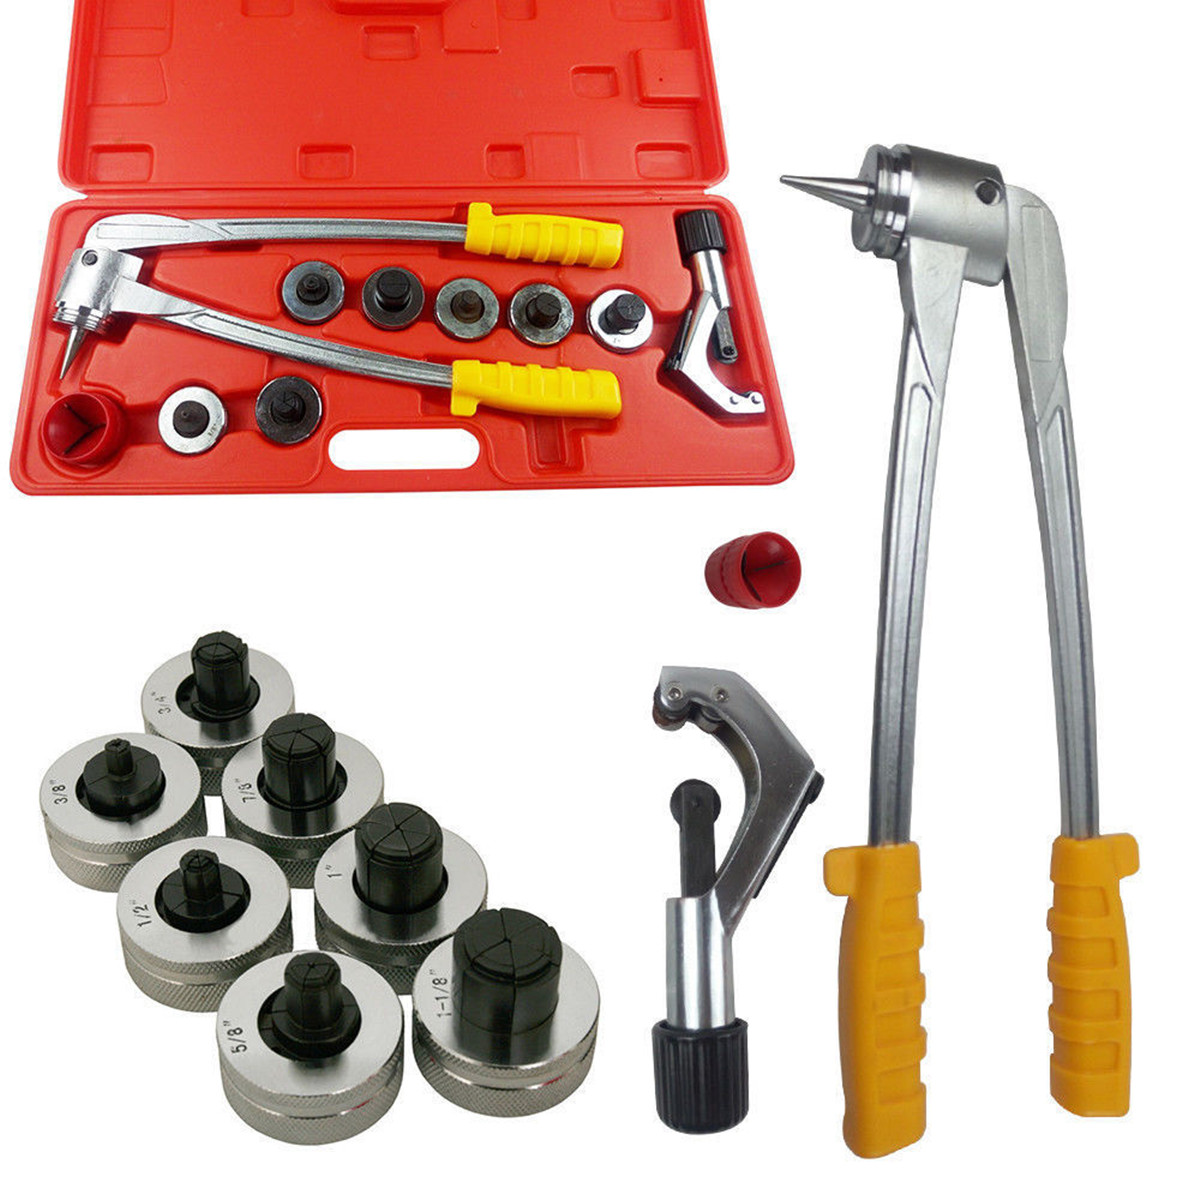 Pipe Expander Tool Arrival Tube Expander Tool Kit Pipe Expander Heavy Duty Plumbing Tube Cutter Plumbing Air Conditioner T018 7 42mm heavy duty tube cutter ct 312